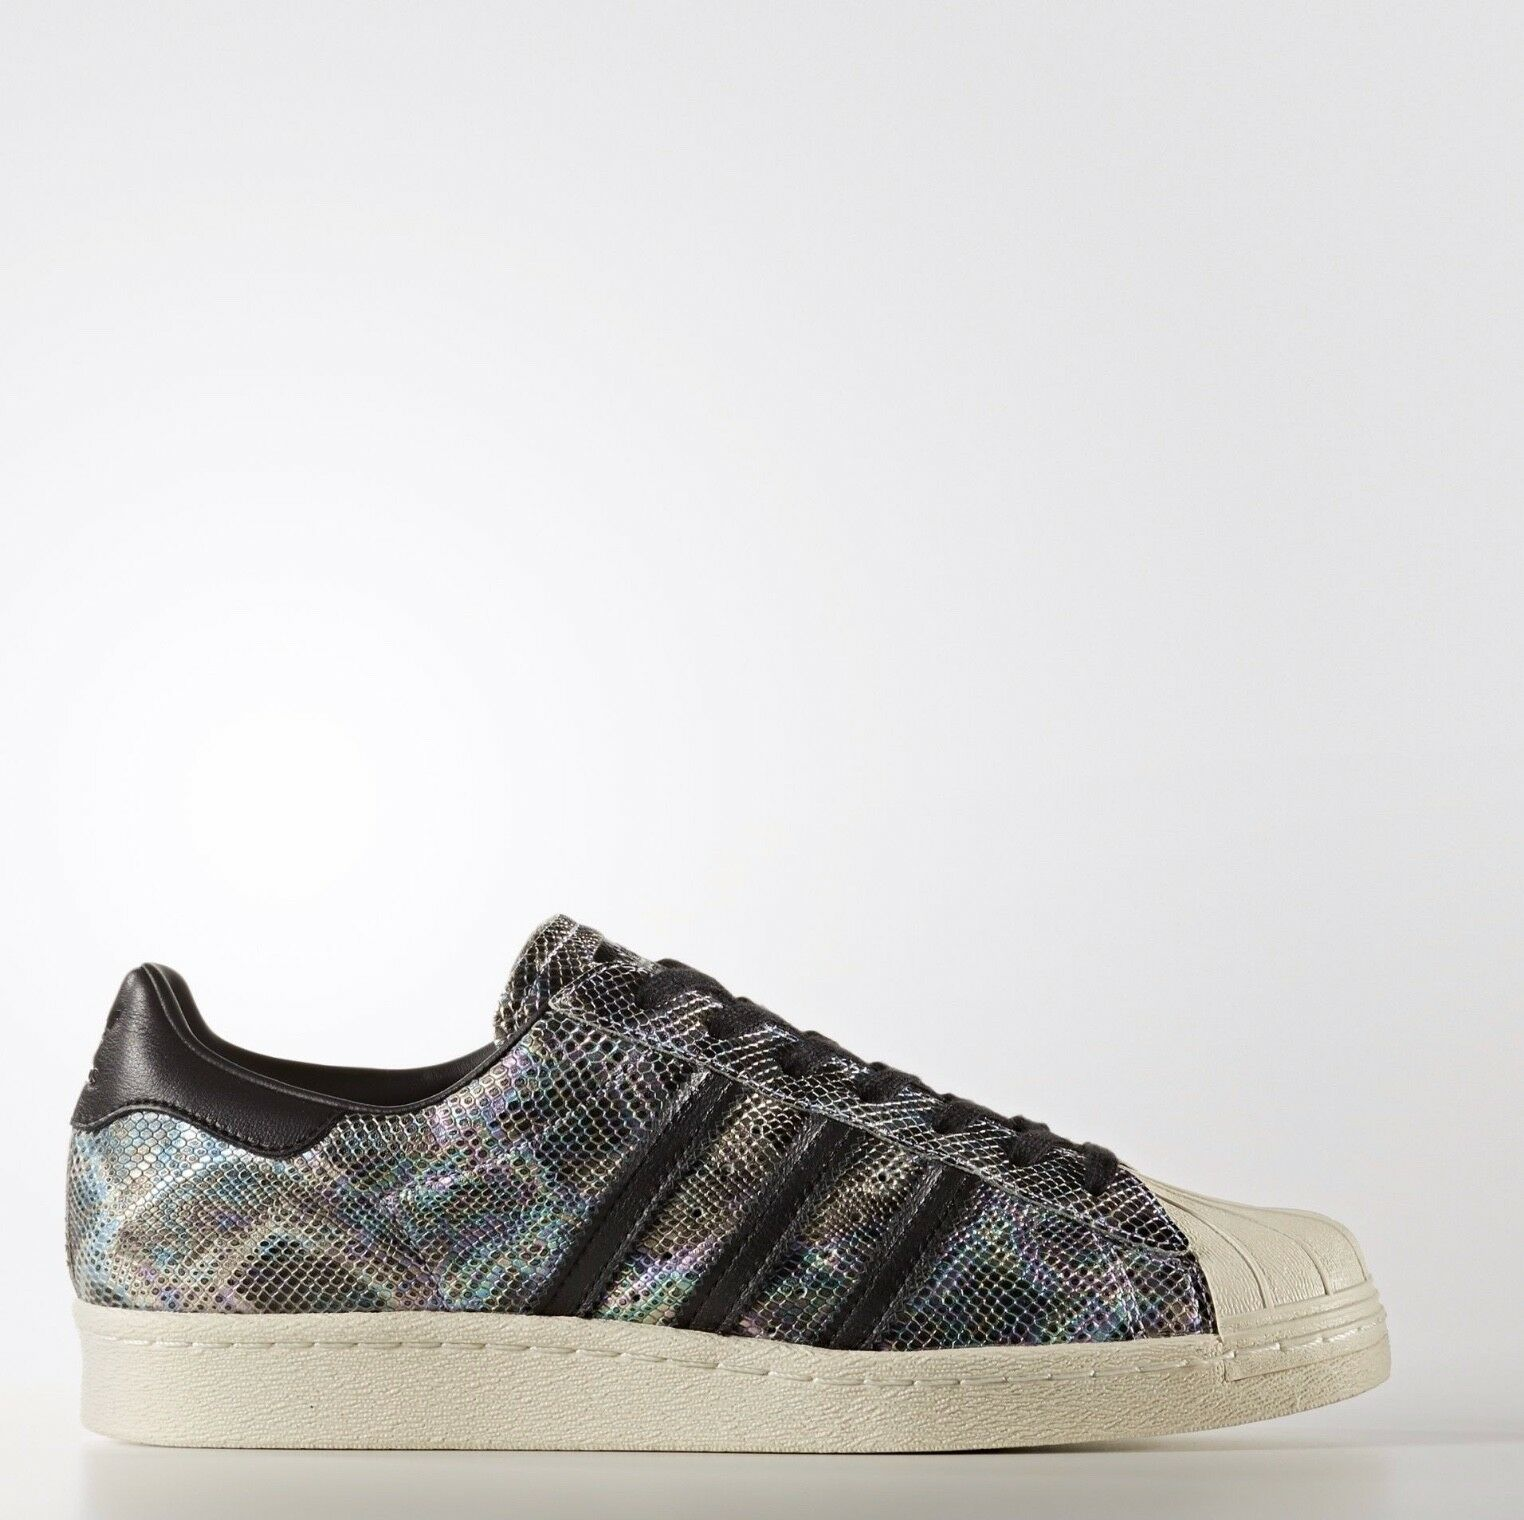 Adidas Originals Superstar 80s 80's Black White Metallic Snakeskin BZ0142 Sz 9.5